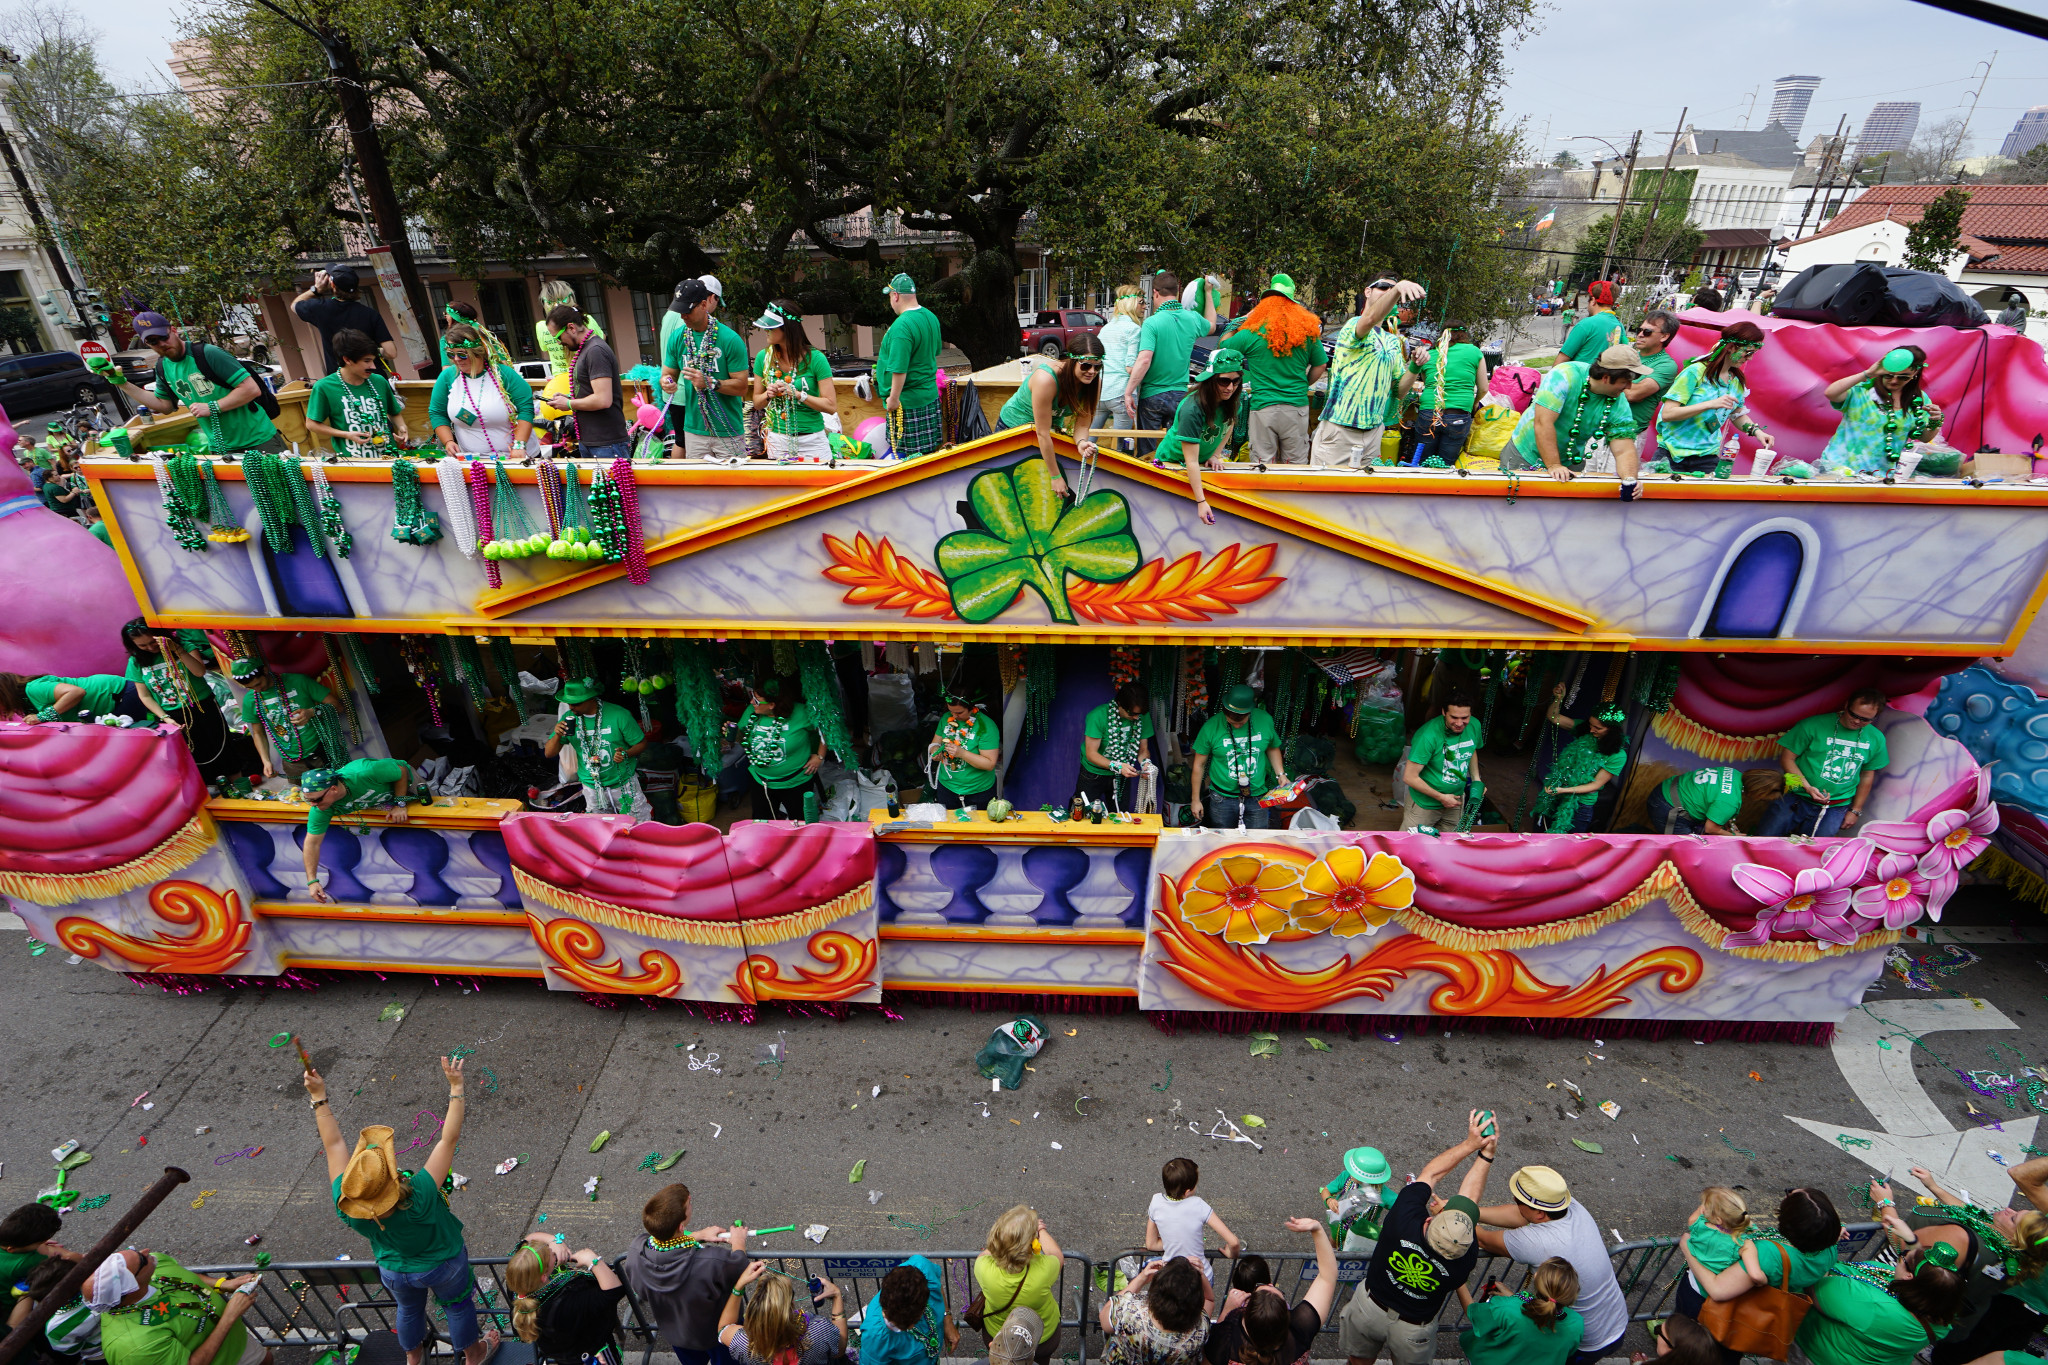 A float from one of the city's St. Patrick's Day parades. (Photo via New Orleans Tourism Marketing Corp.)